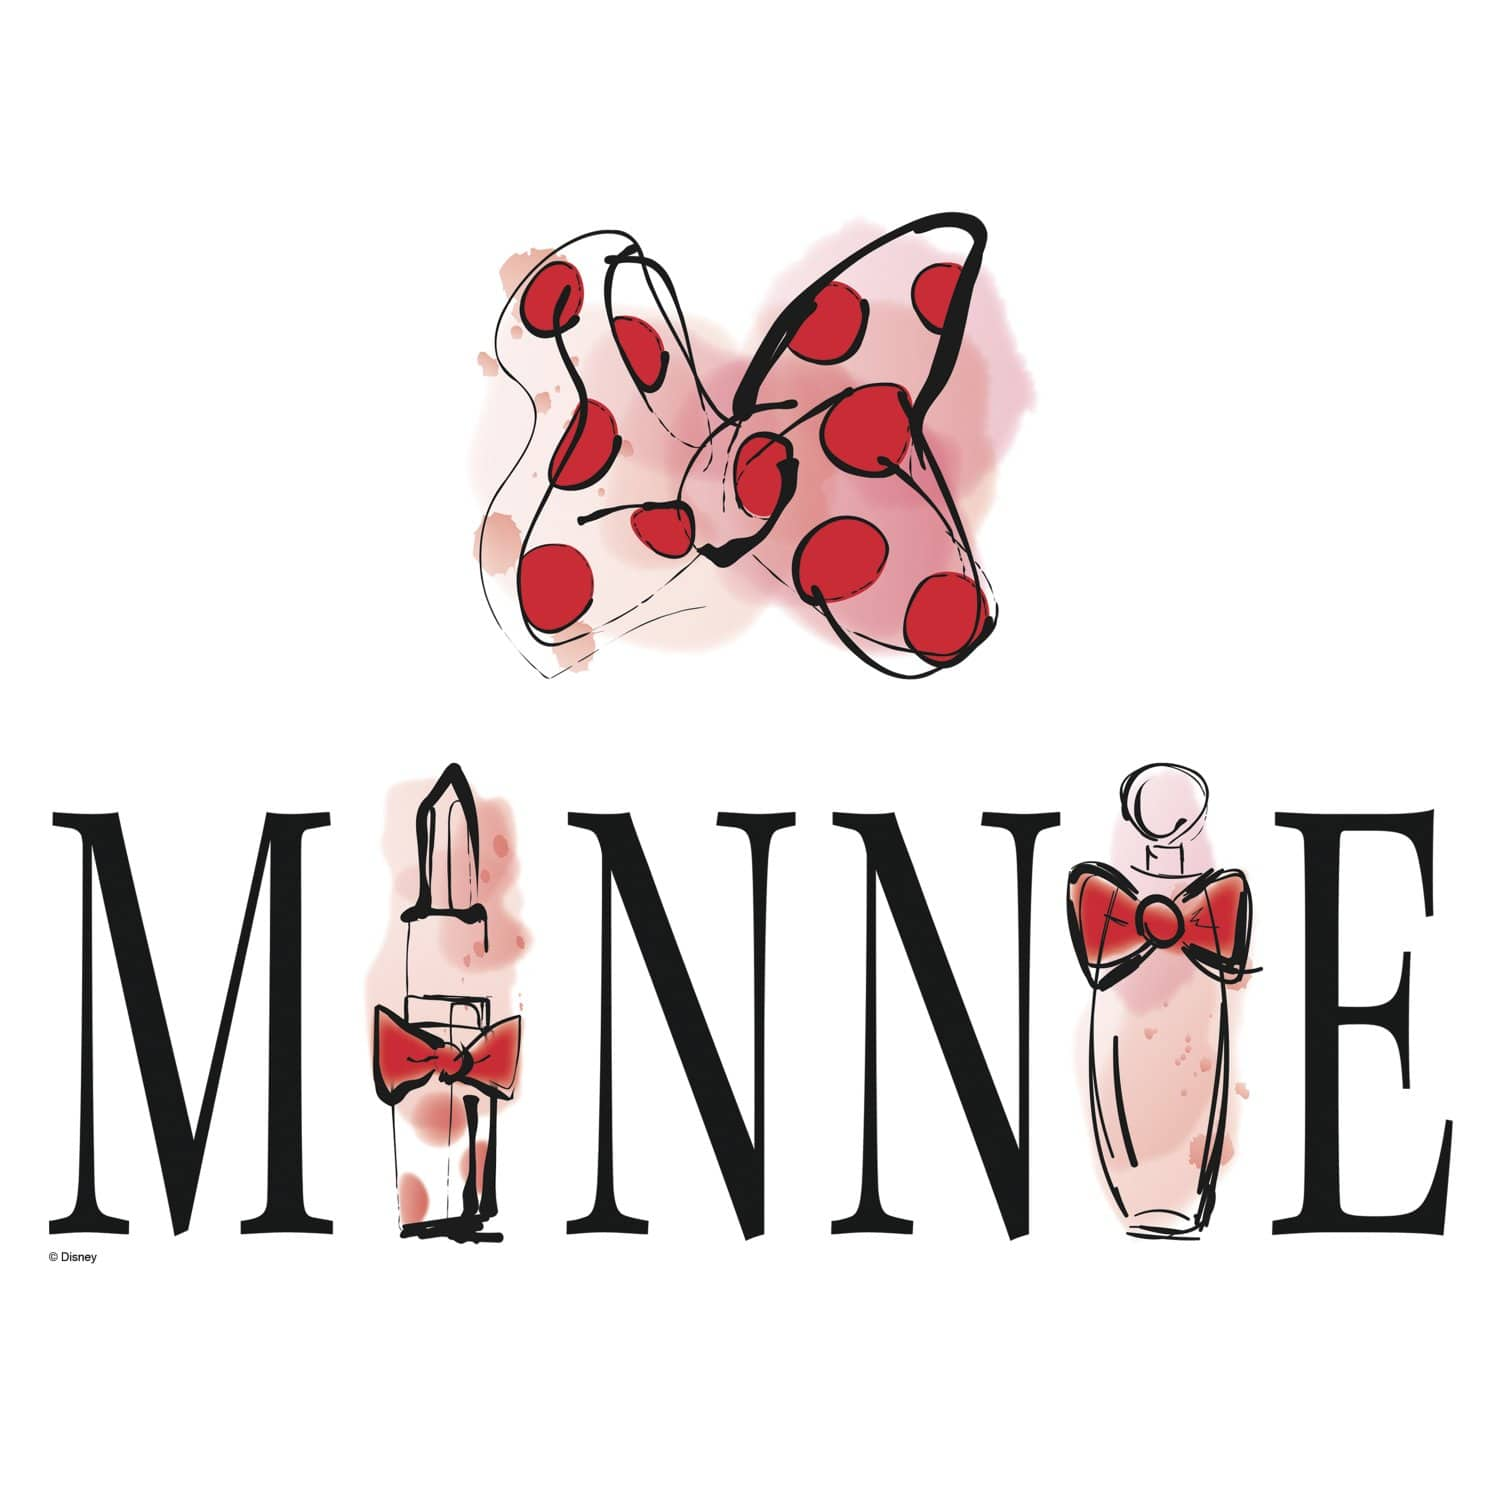 RoomMates Minnie Mouse Perfume Peel And Stick Wall Decals $3.87 - Amazon (*Add On or Use Amazon Day)